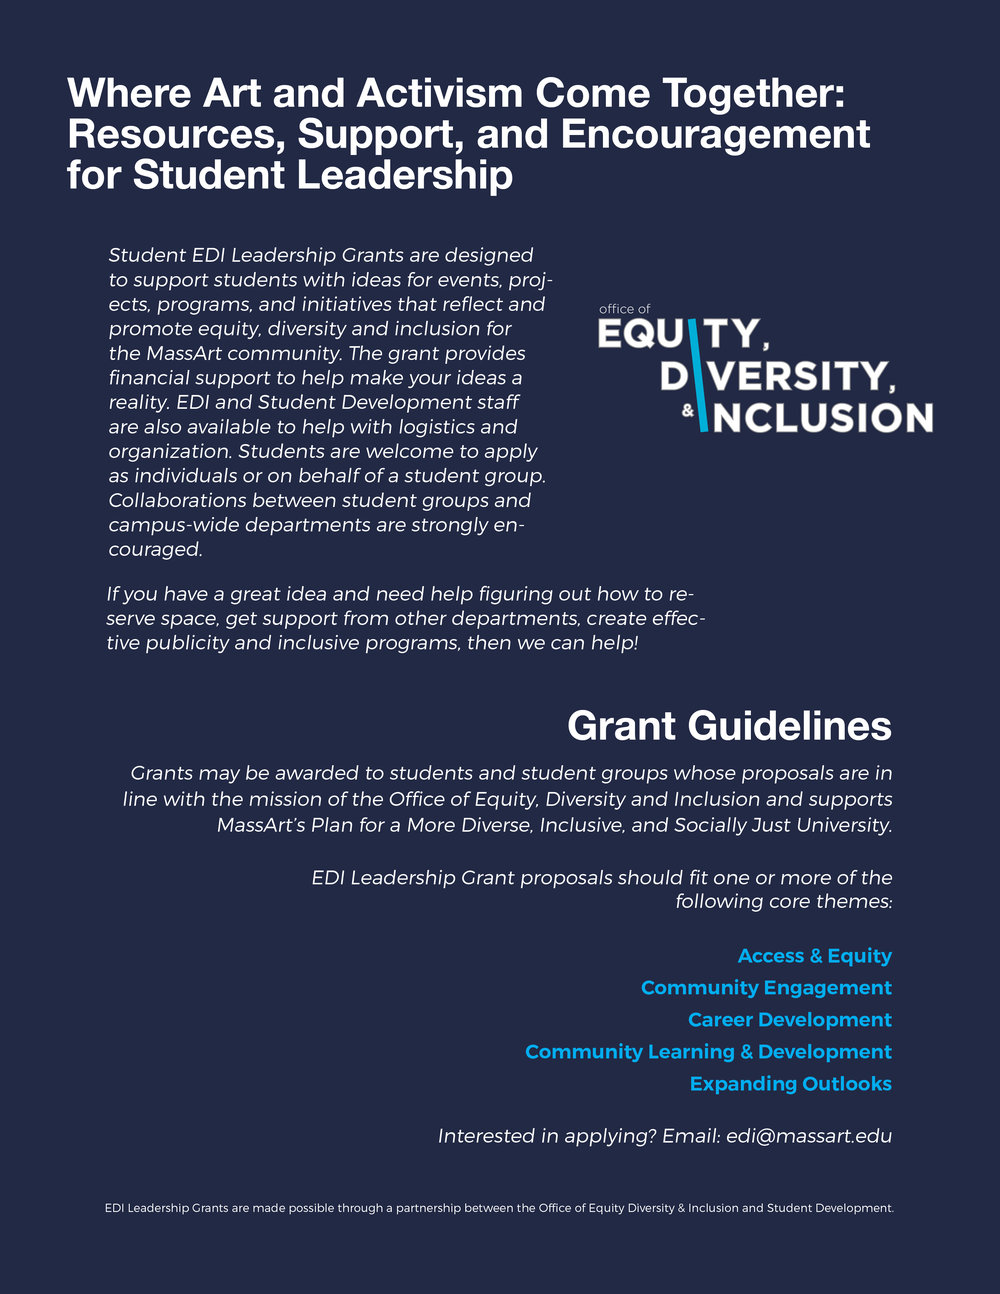 Office of Equity, Diversity, & Inclusion Grant Poster for MassArt